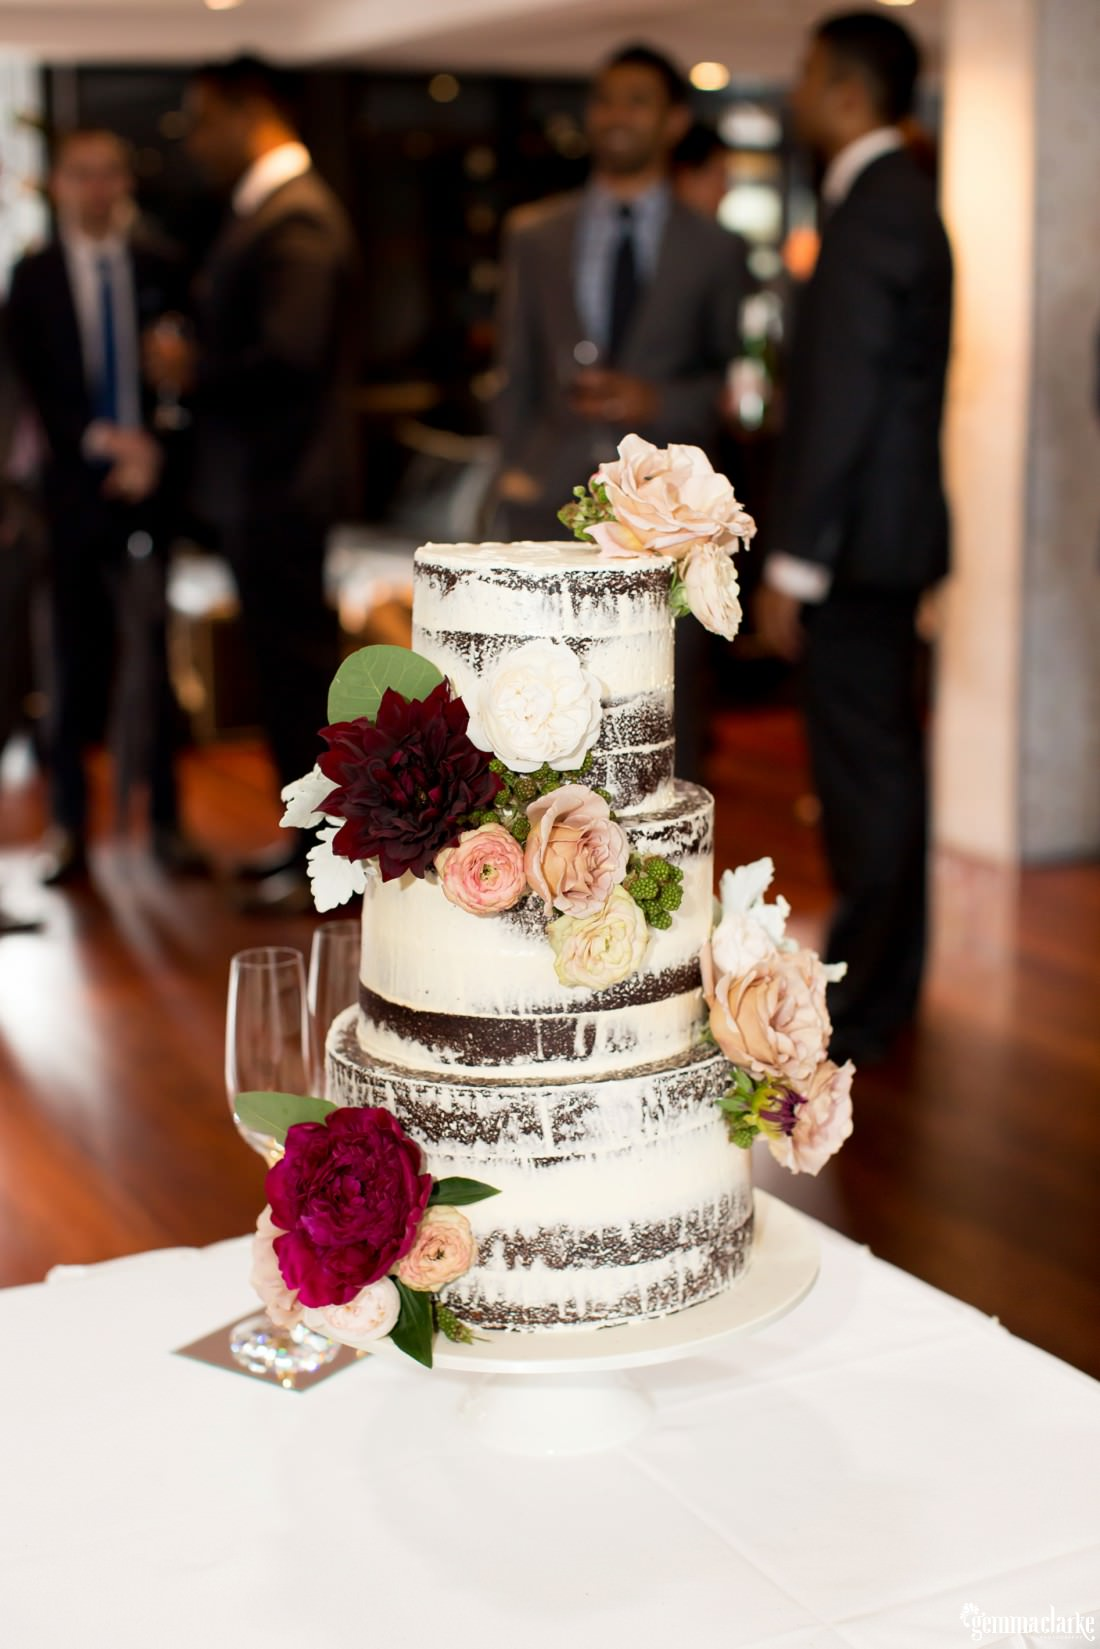 A three tiered naked cake decorated with flowers